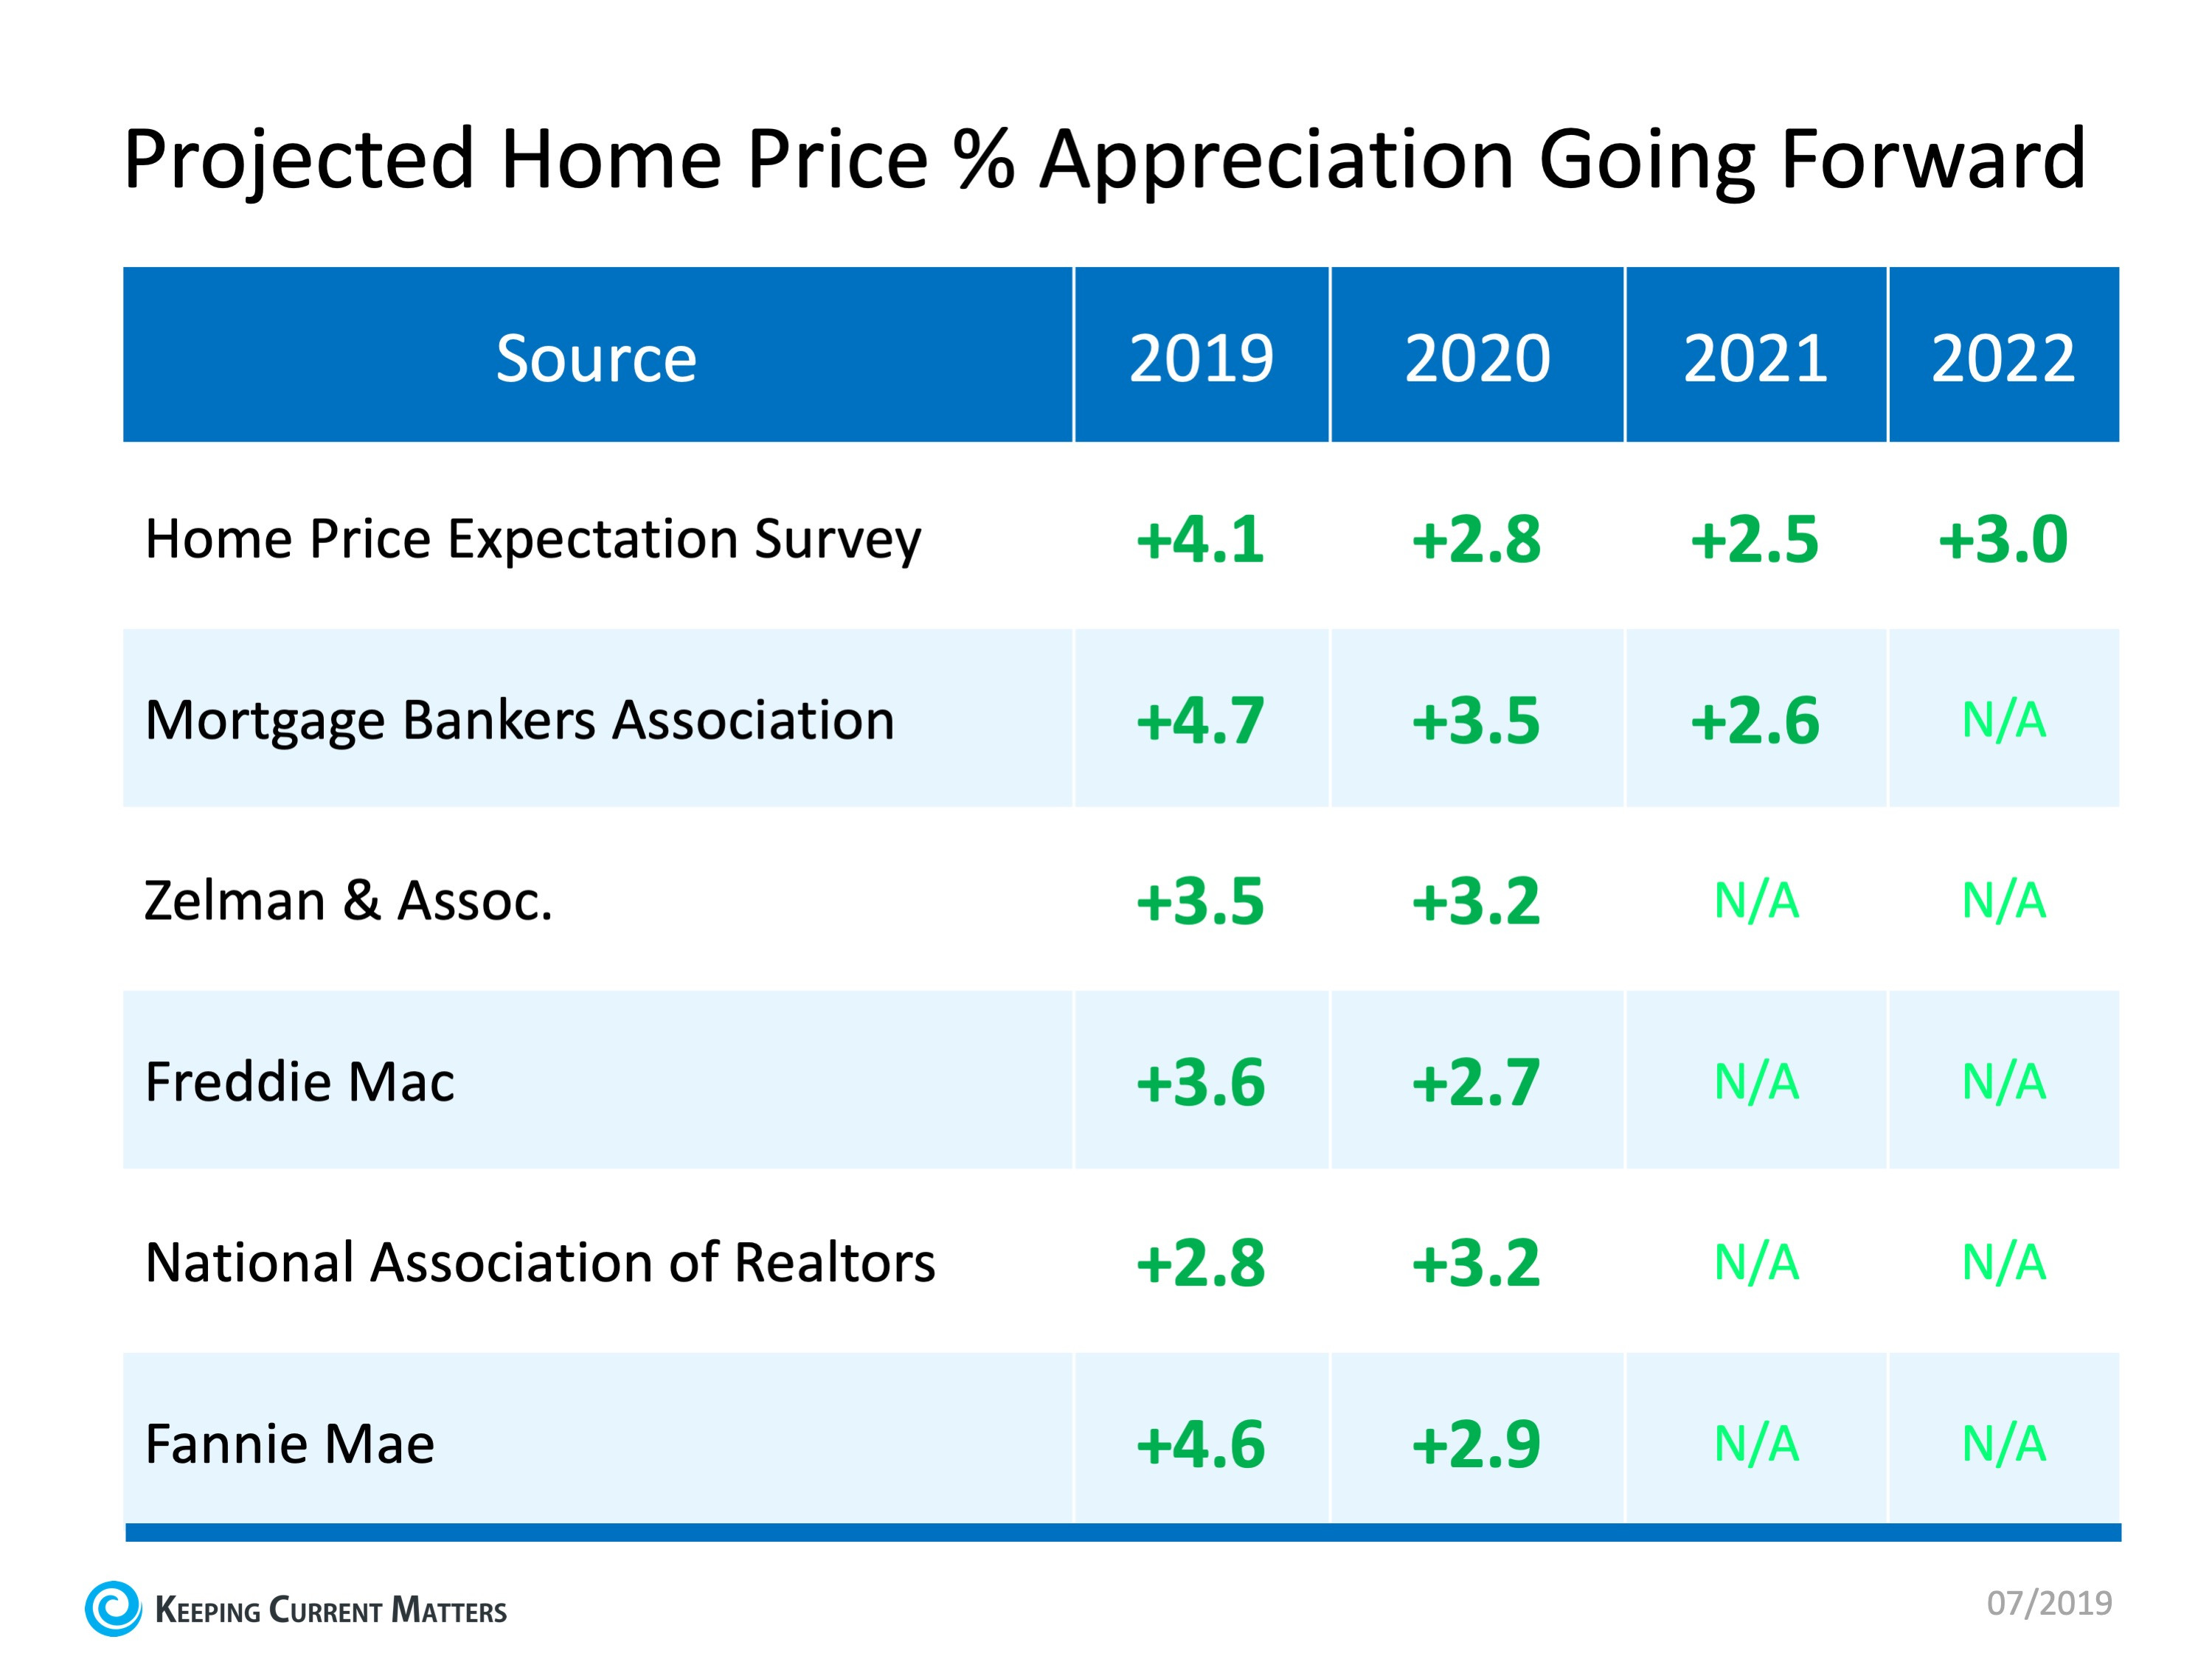 Projected Home Price Appreciation